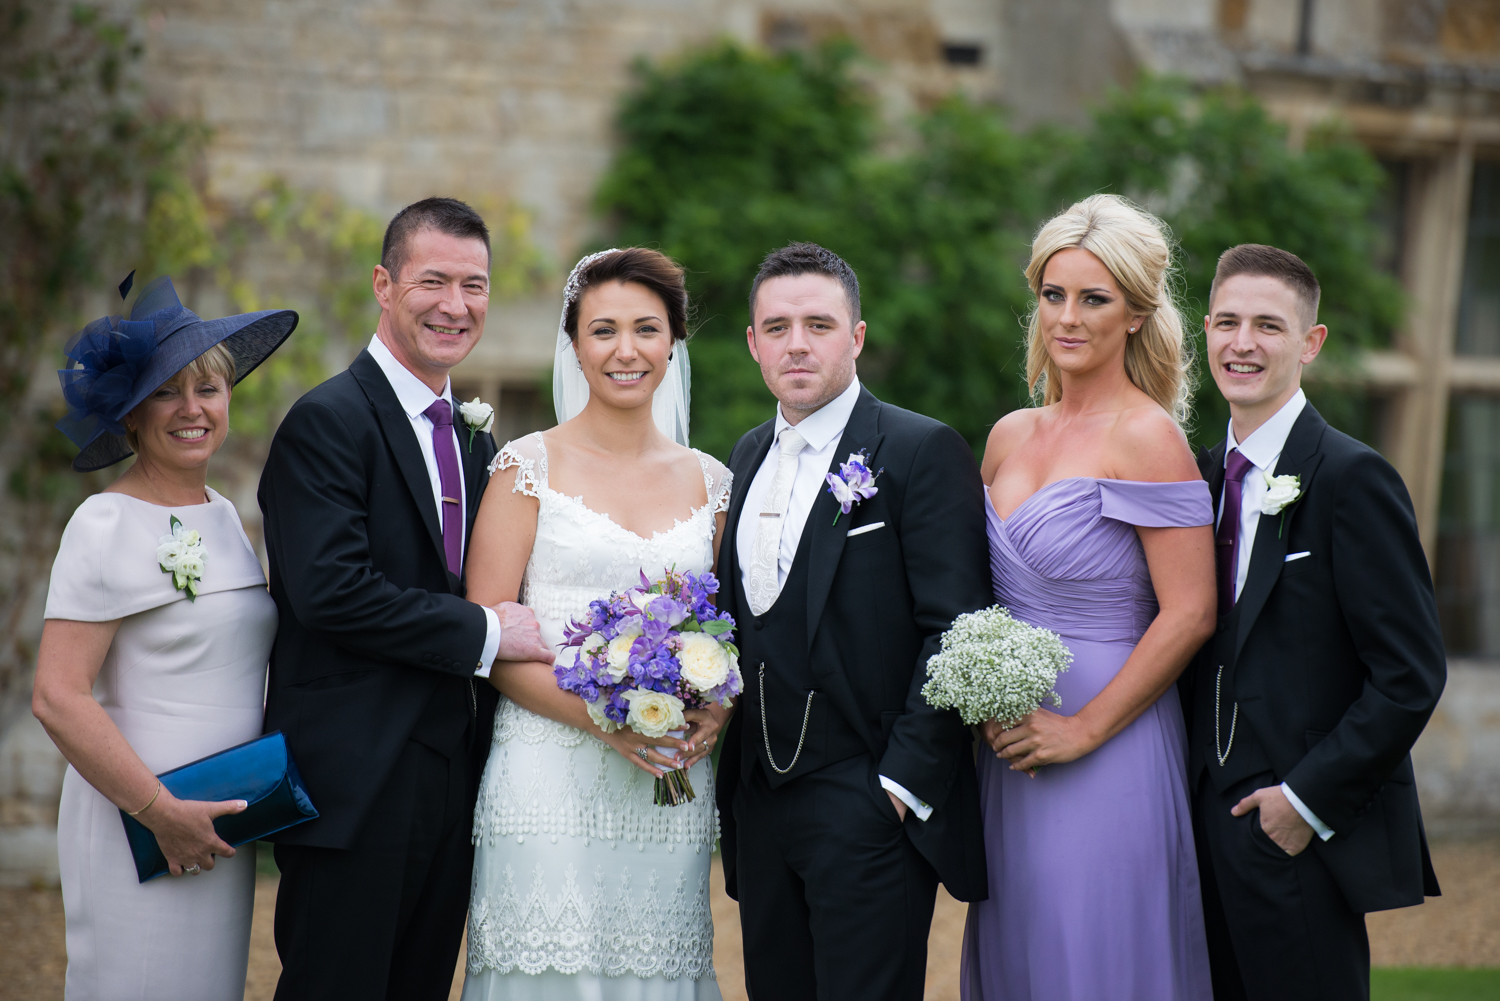 family formal photograph at Rocking Castle Wedding